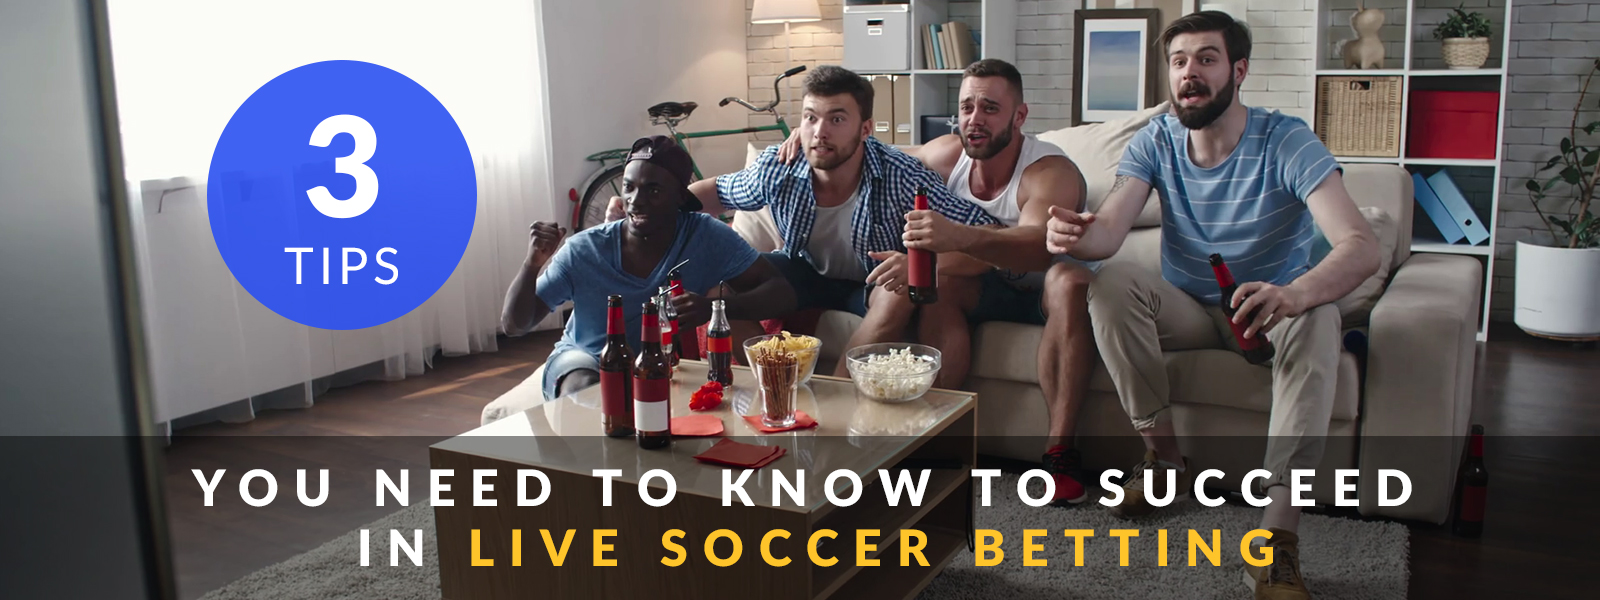 6 Tips You Need to Know to Succeed in Live Soccer Betting